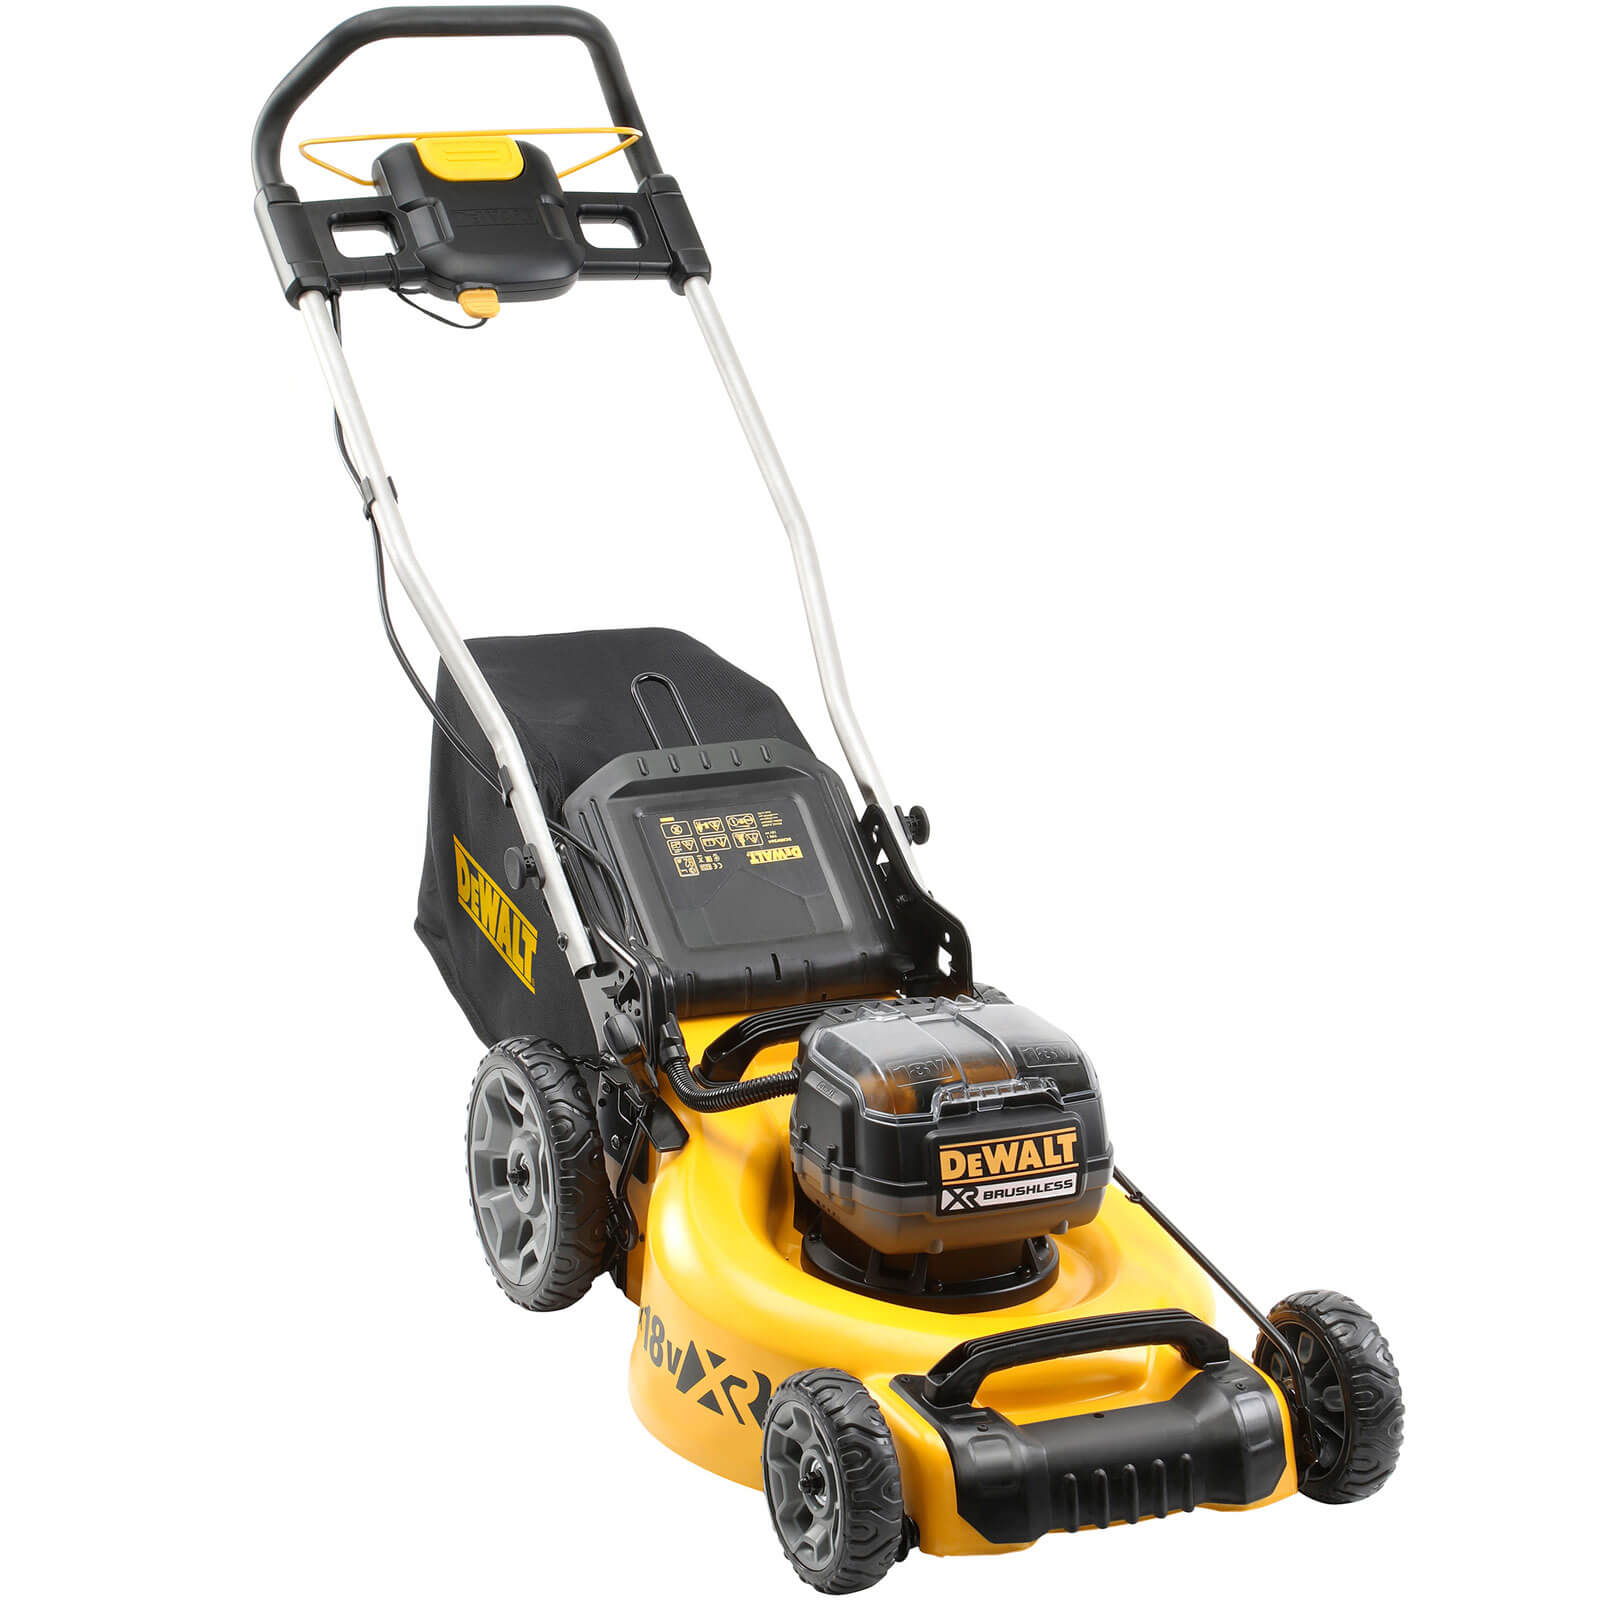 Image of DeWalt DCMW564 Twin 18v XR Cordless Brushless Lawnmower 2 x 5ah Li-ion Charger